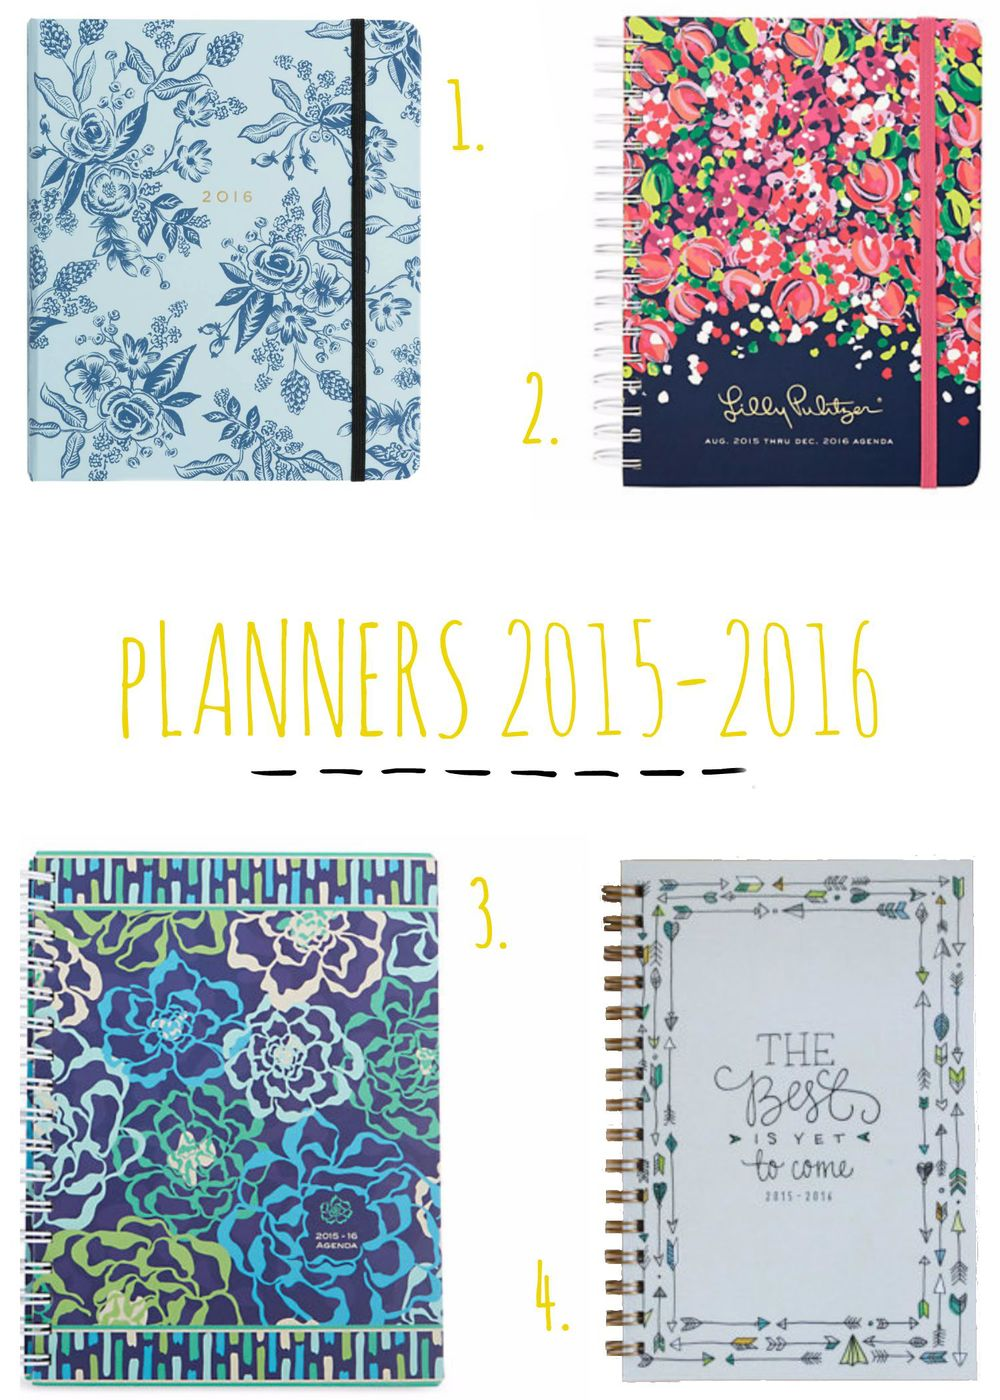 Planners 2015-2016